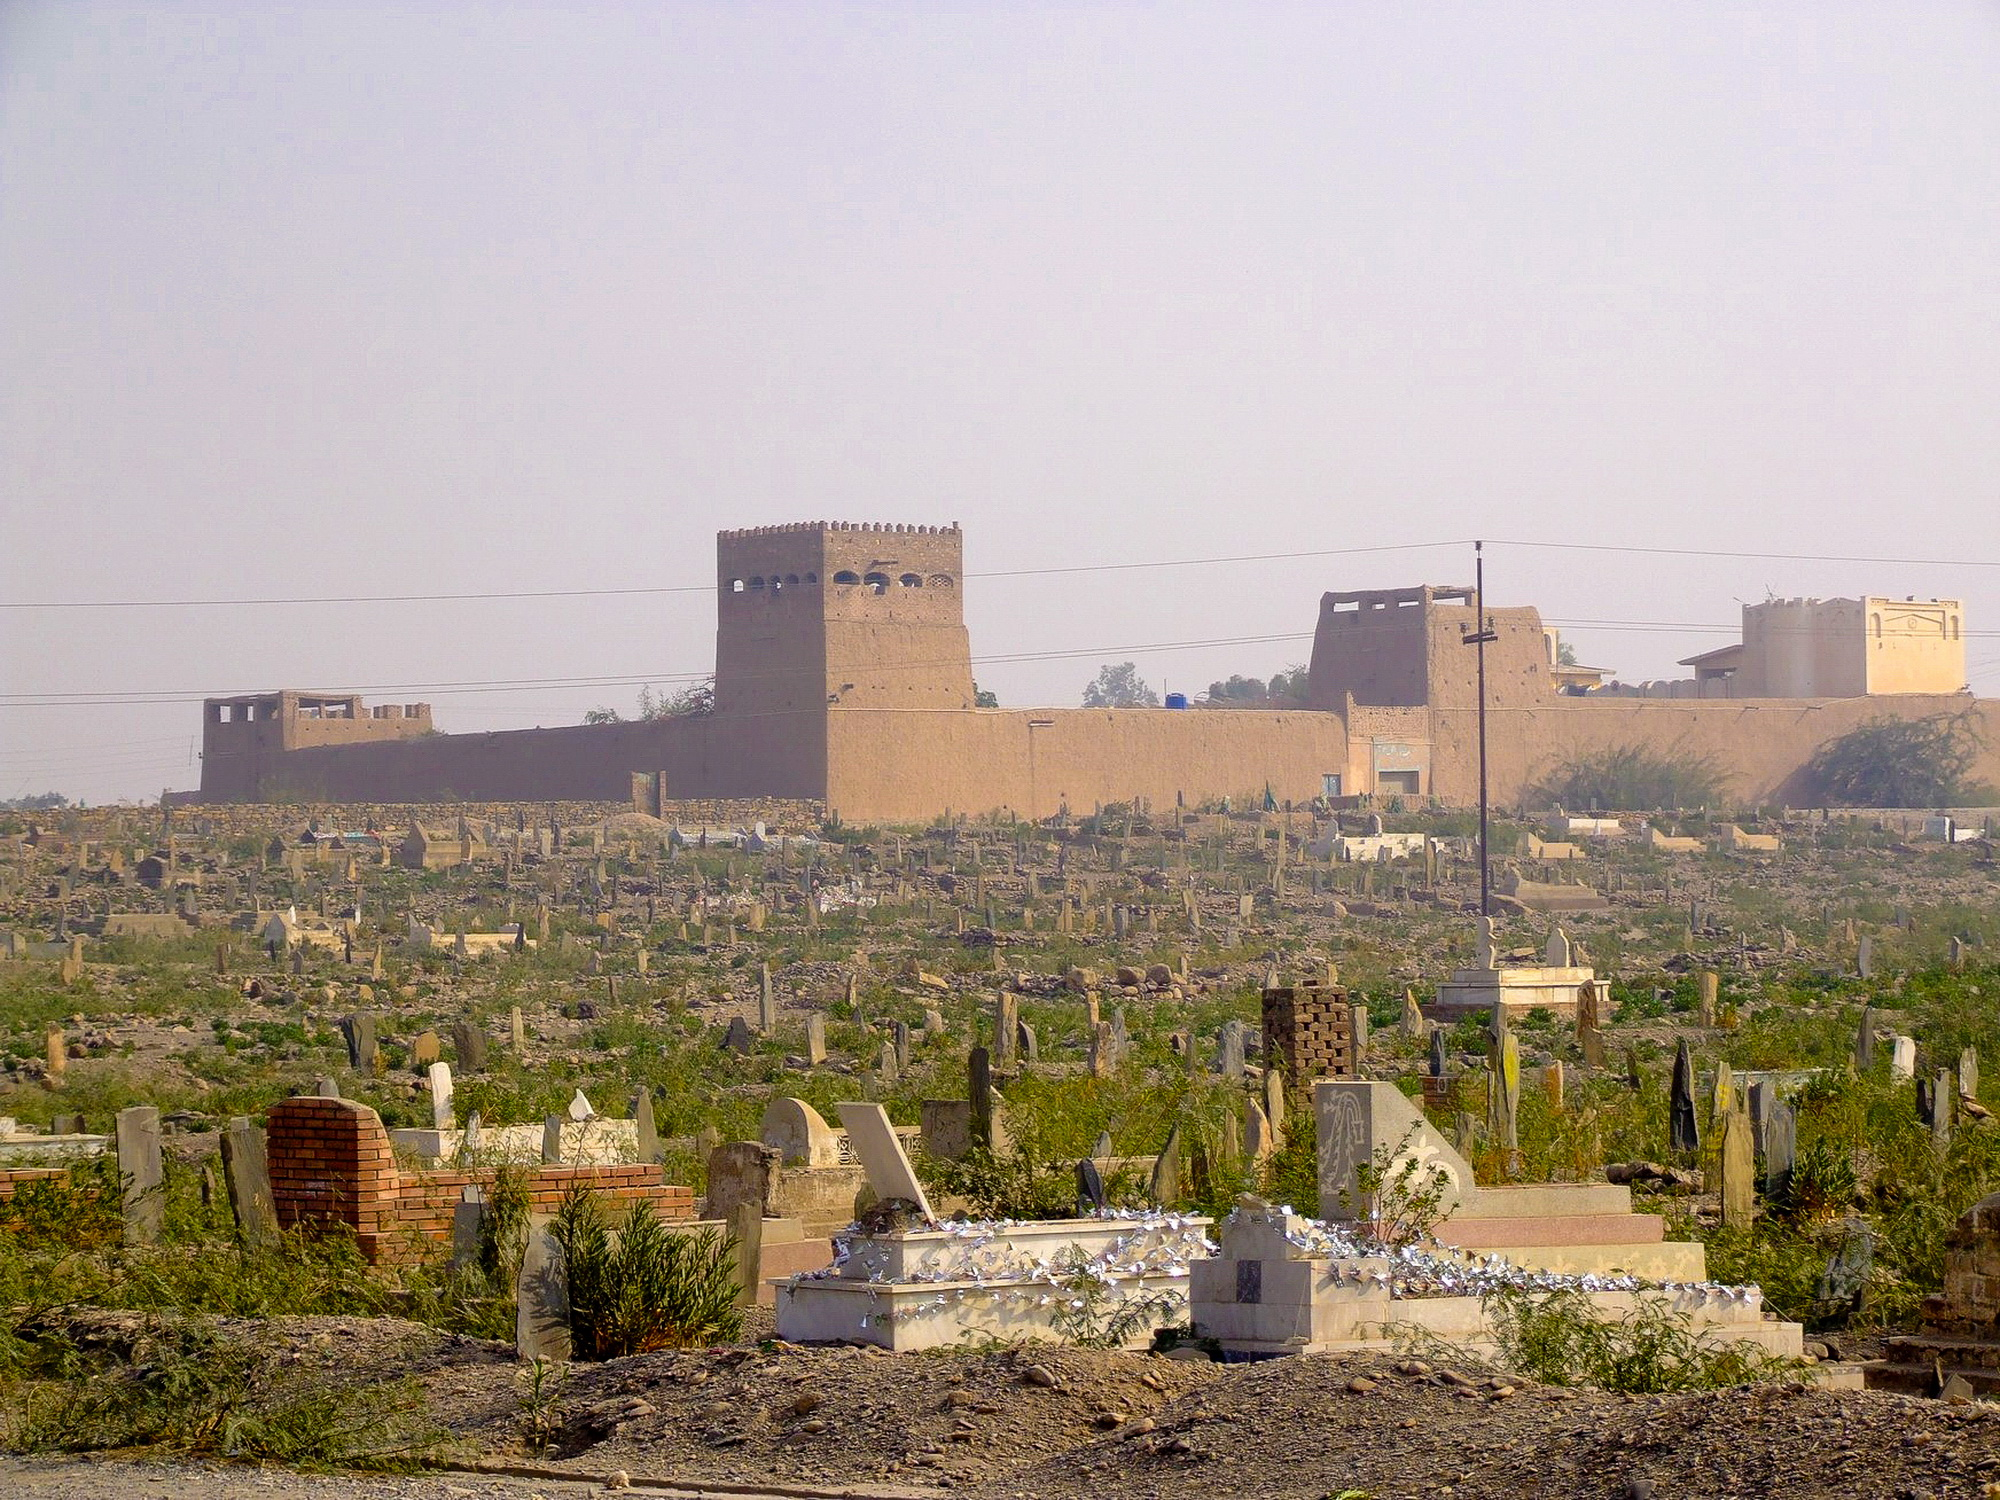 Warlords house and graveyard in the Khyber Pass, Pakistan